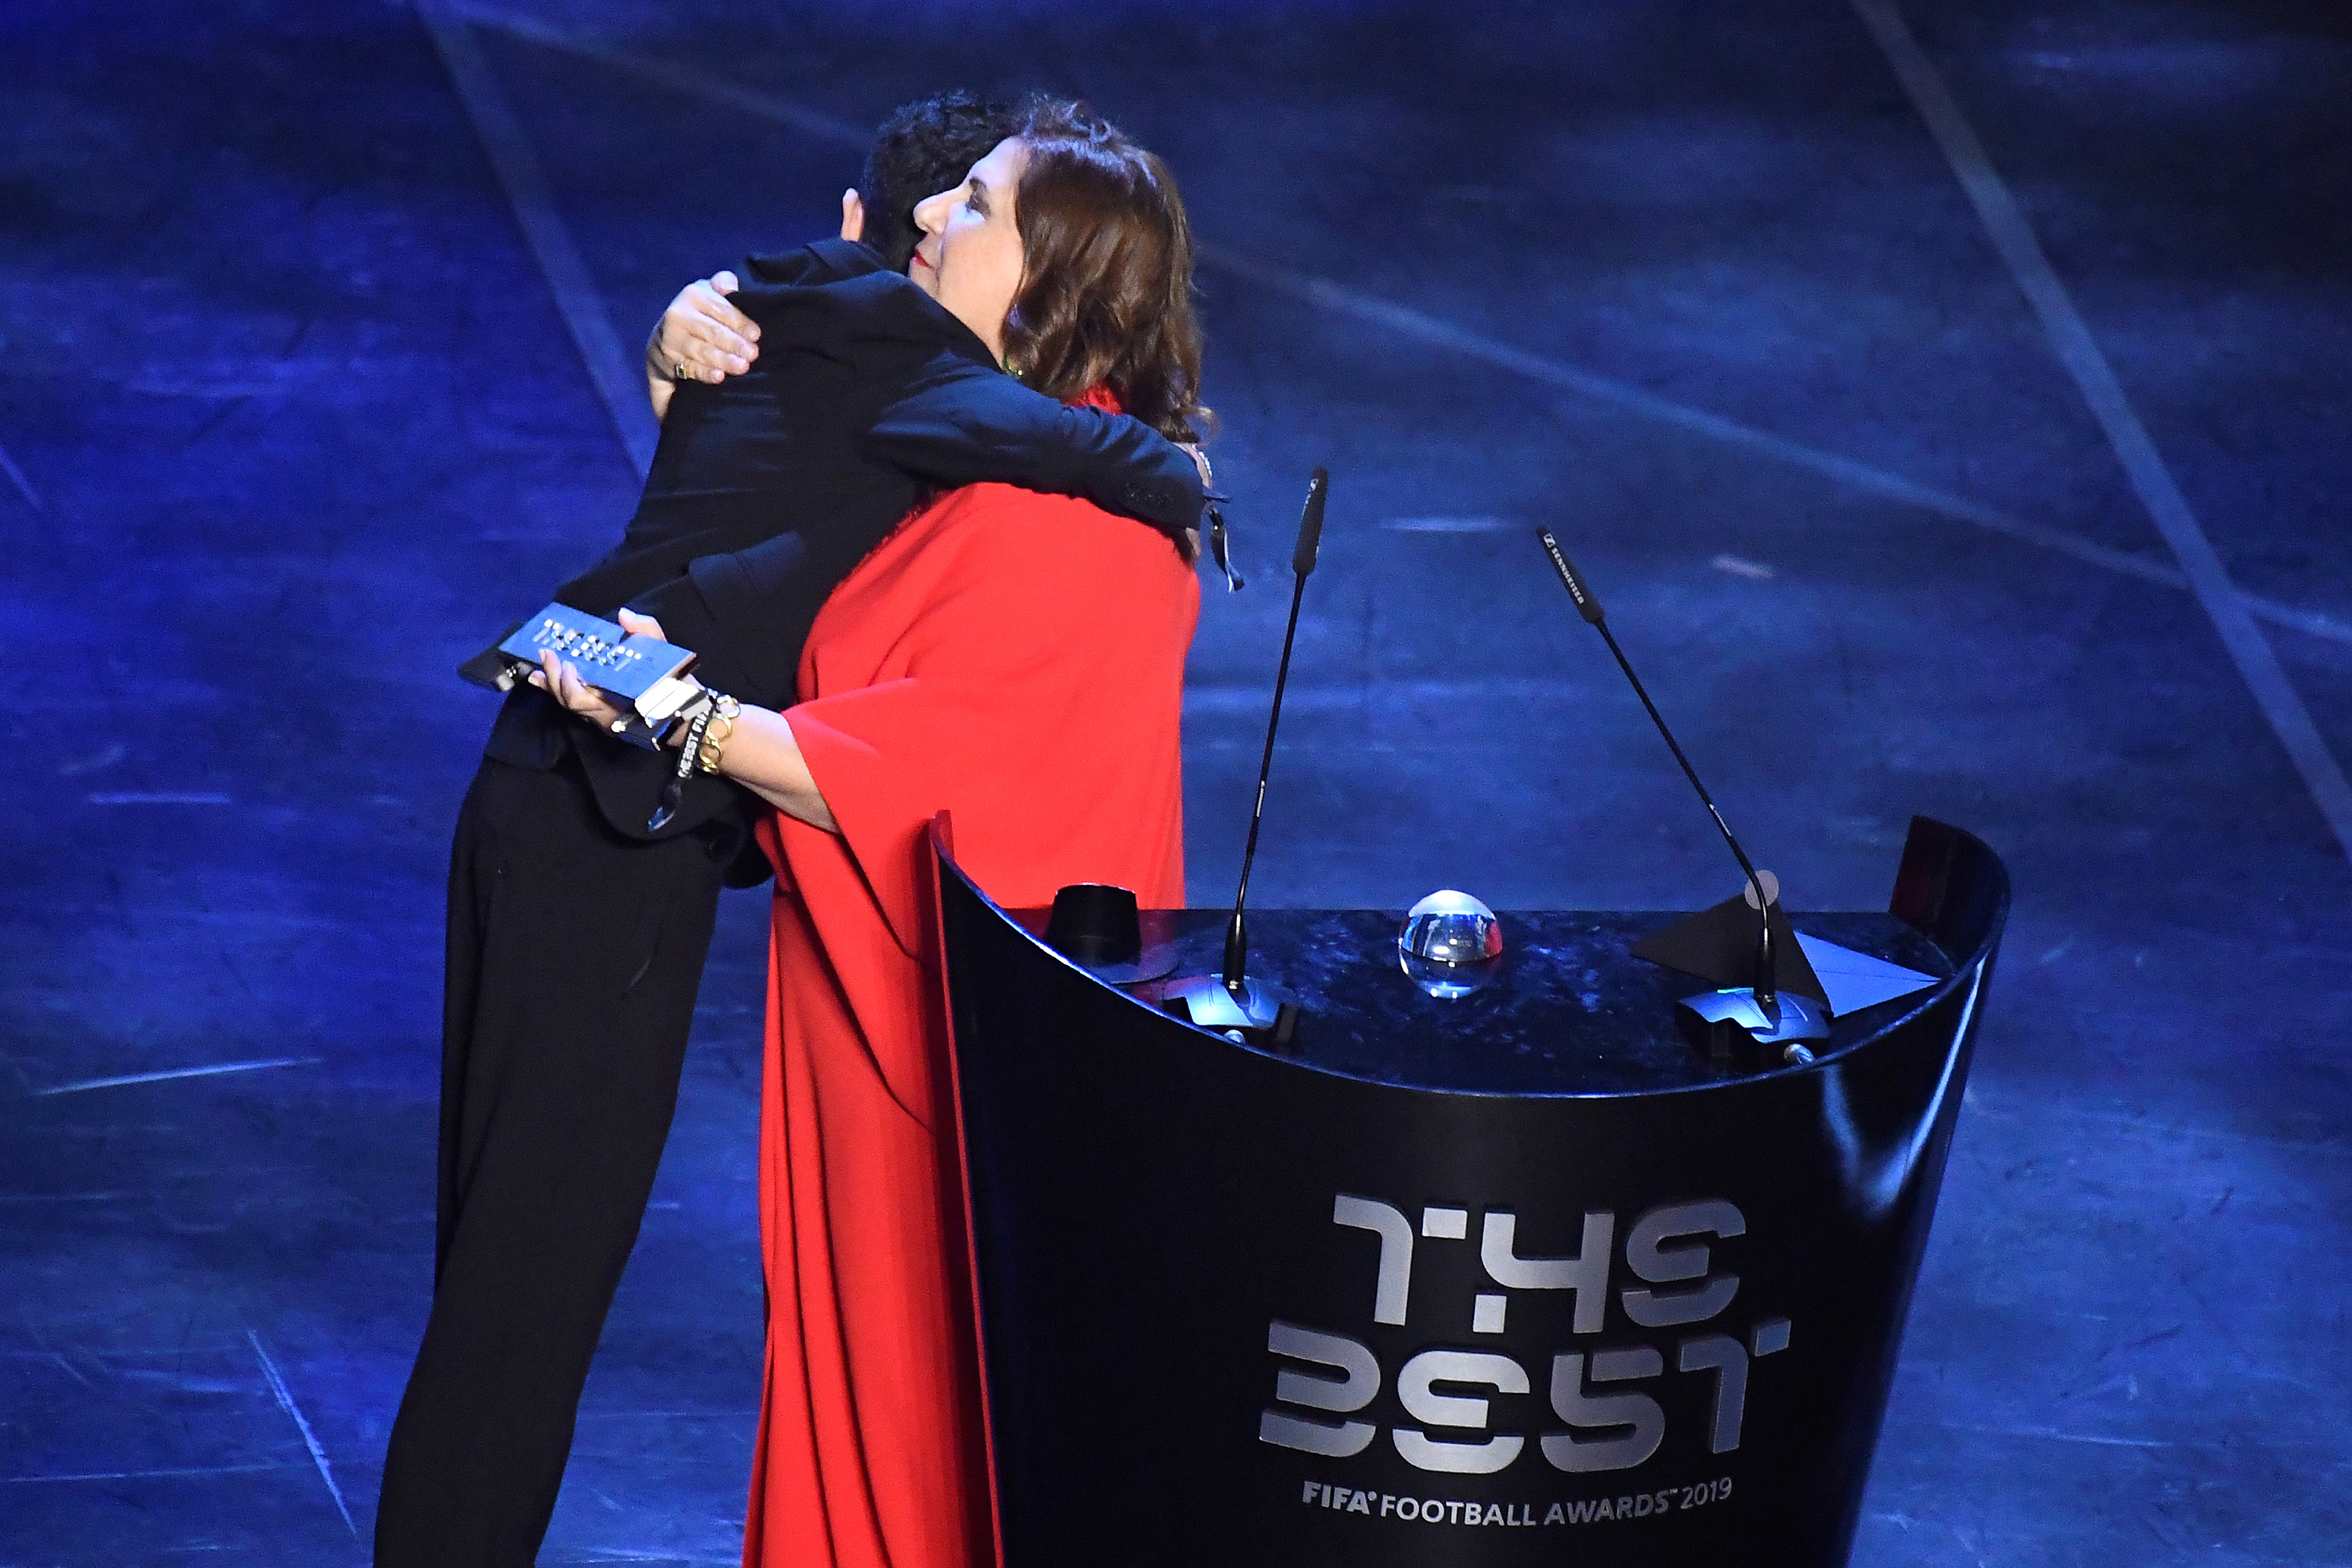 Soccer Football - The Best FIFA Football Awards - Teatro alla Scala, Milan, Italy - September 23, 2019   Silvia Grecco with her son, speaks after winning the FIFA fan award   REUTERS/Flavio Lo Scalzo